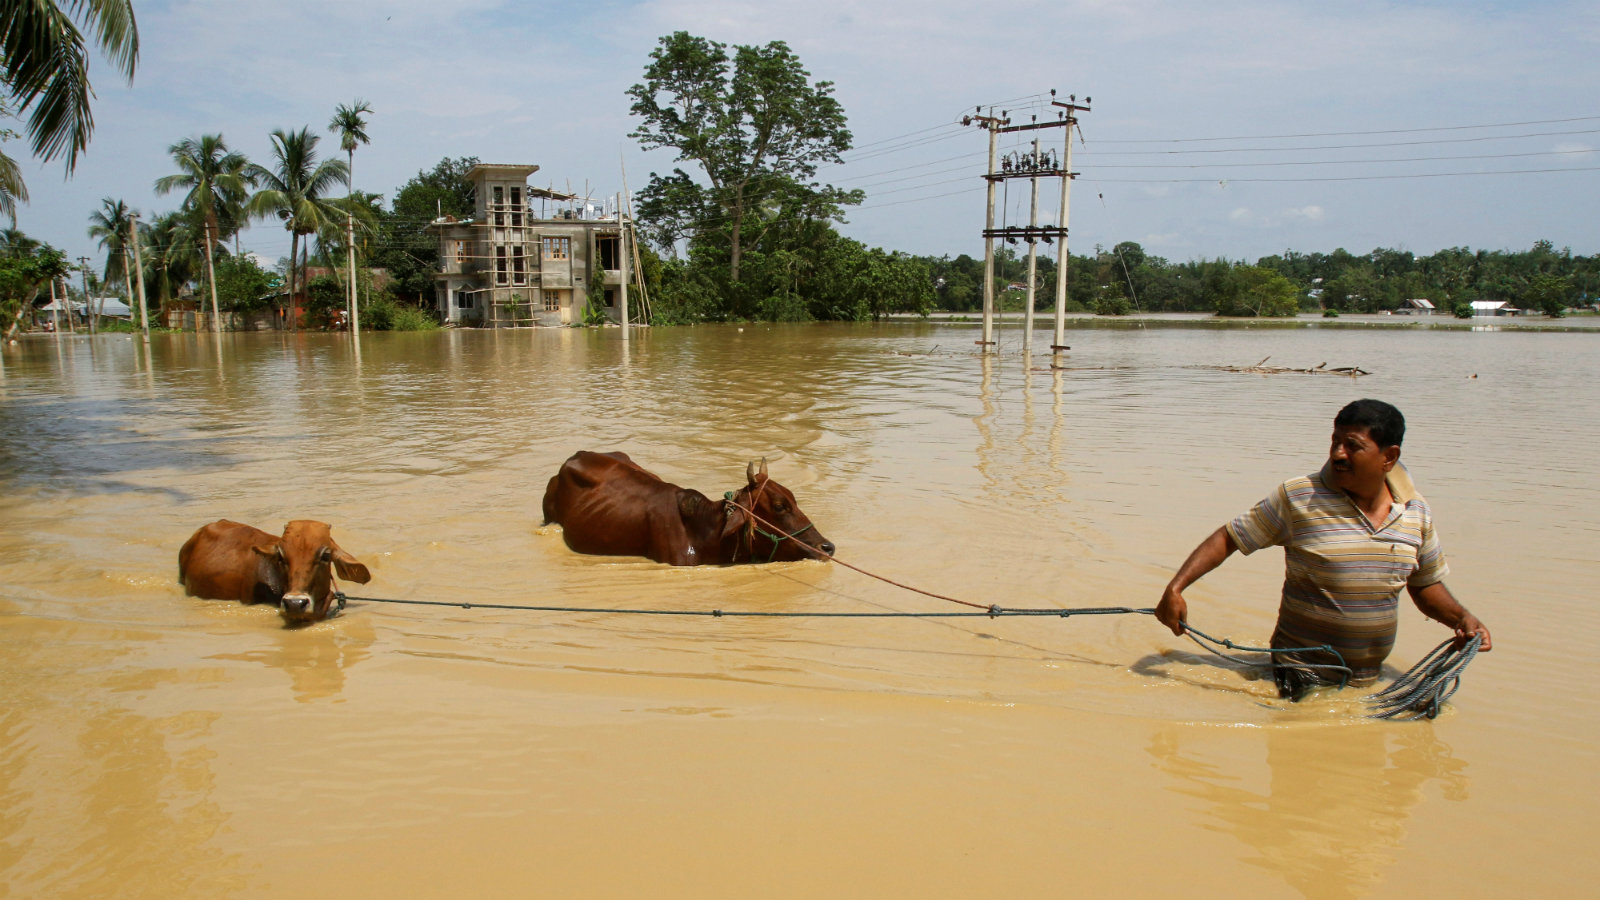 A man pulls his cows to a safer place through a flooded area after heavy rains at Baldakhal village on the outskirts of Agartala, India, May 20, 2018.